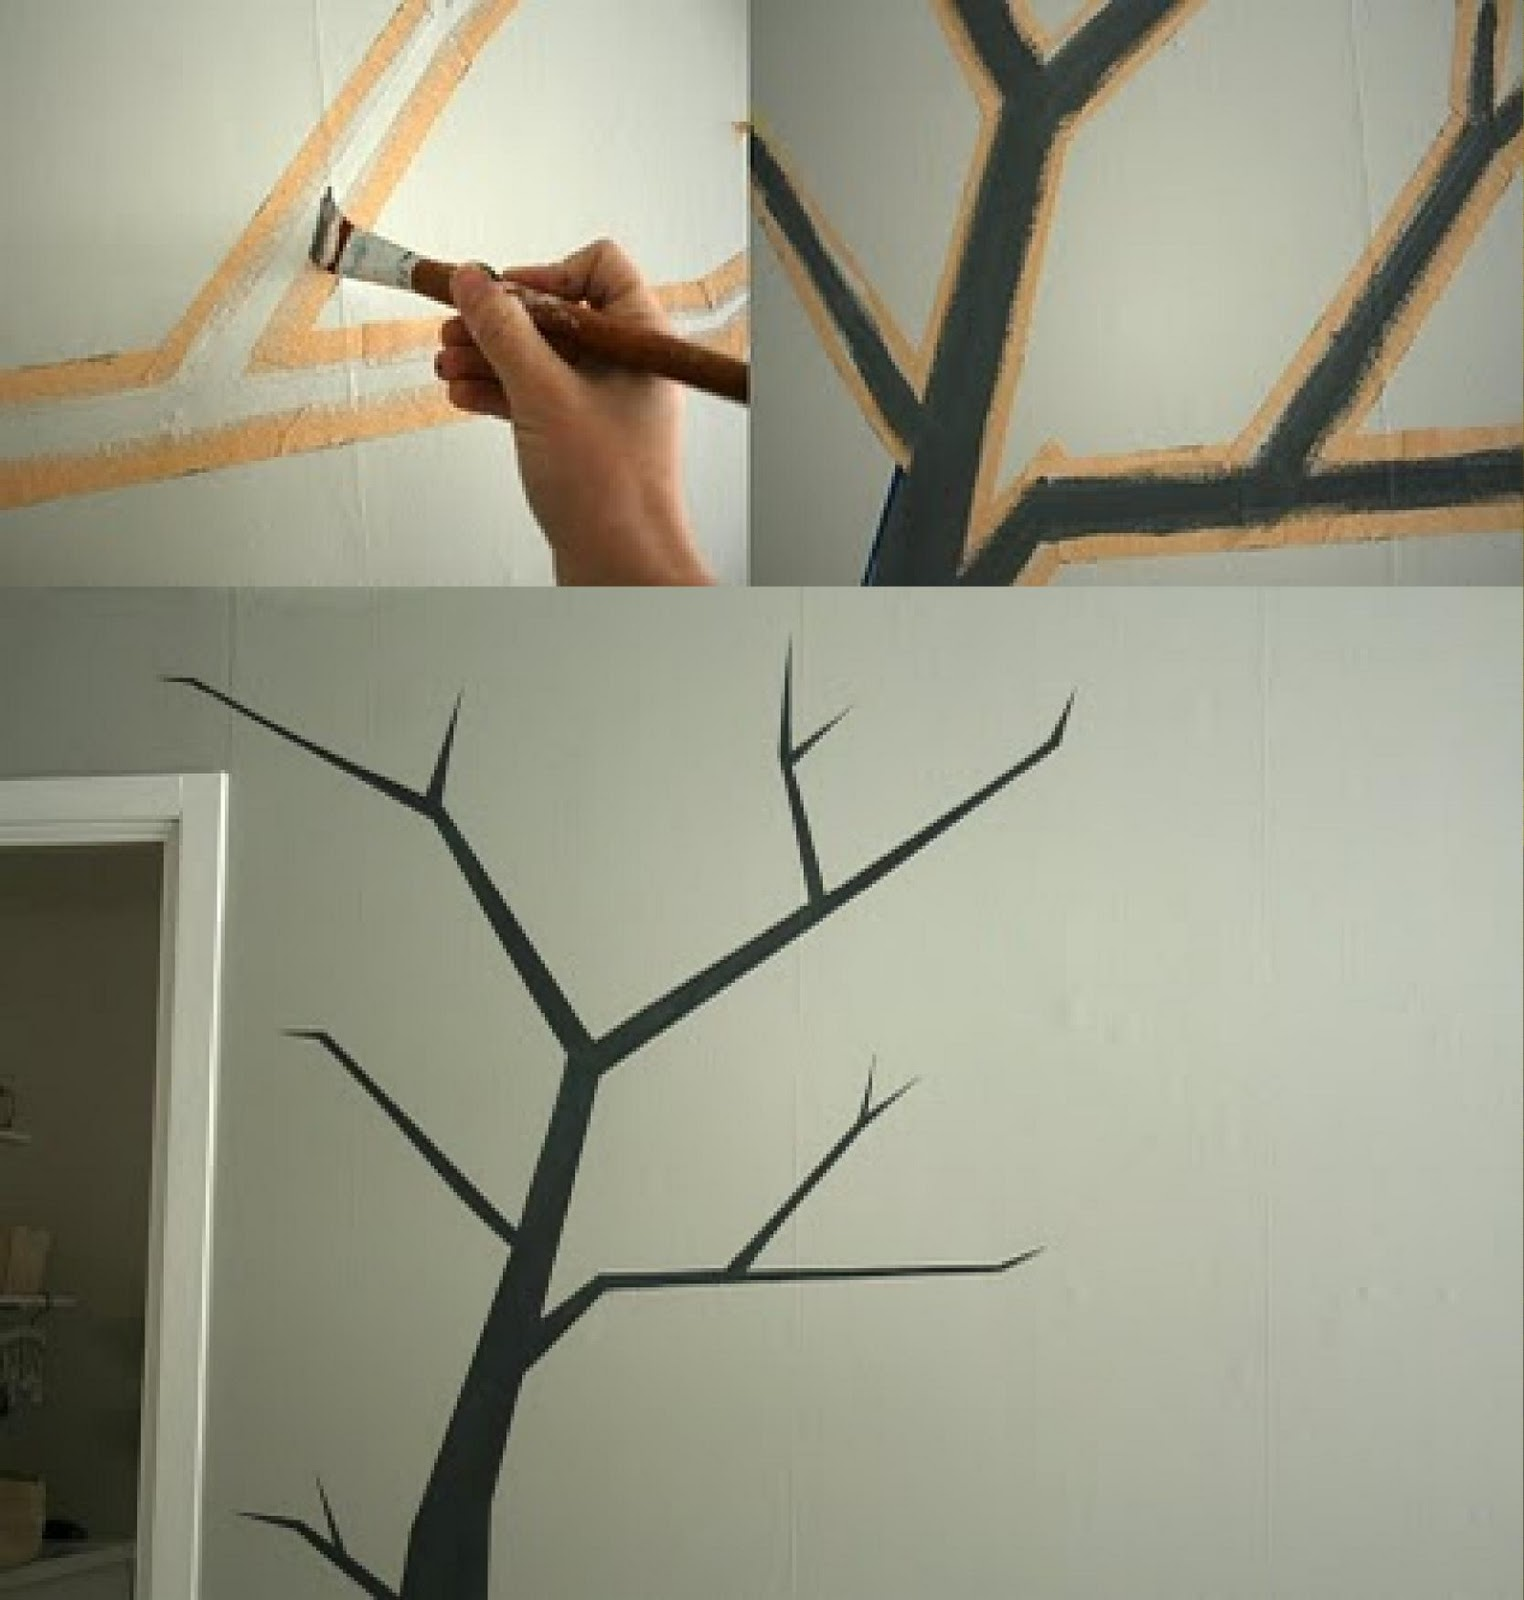 dibujar en la pared: